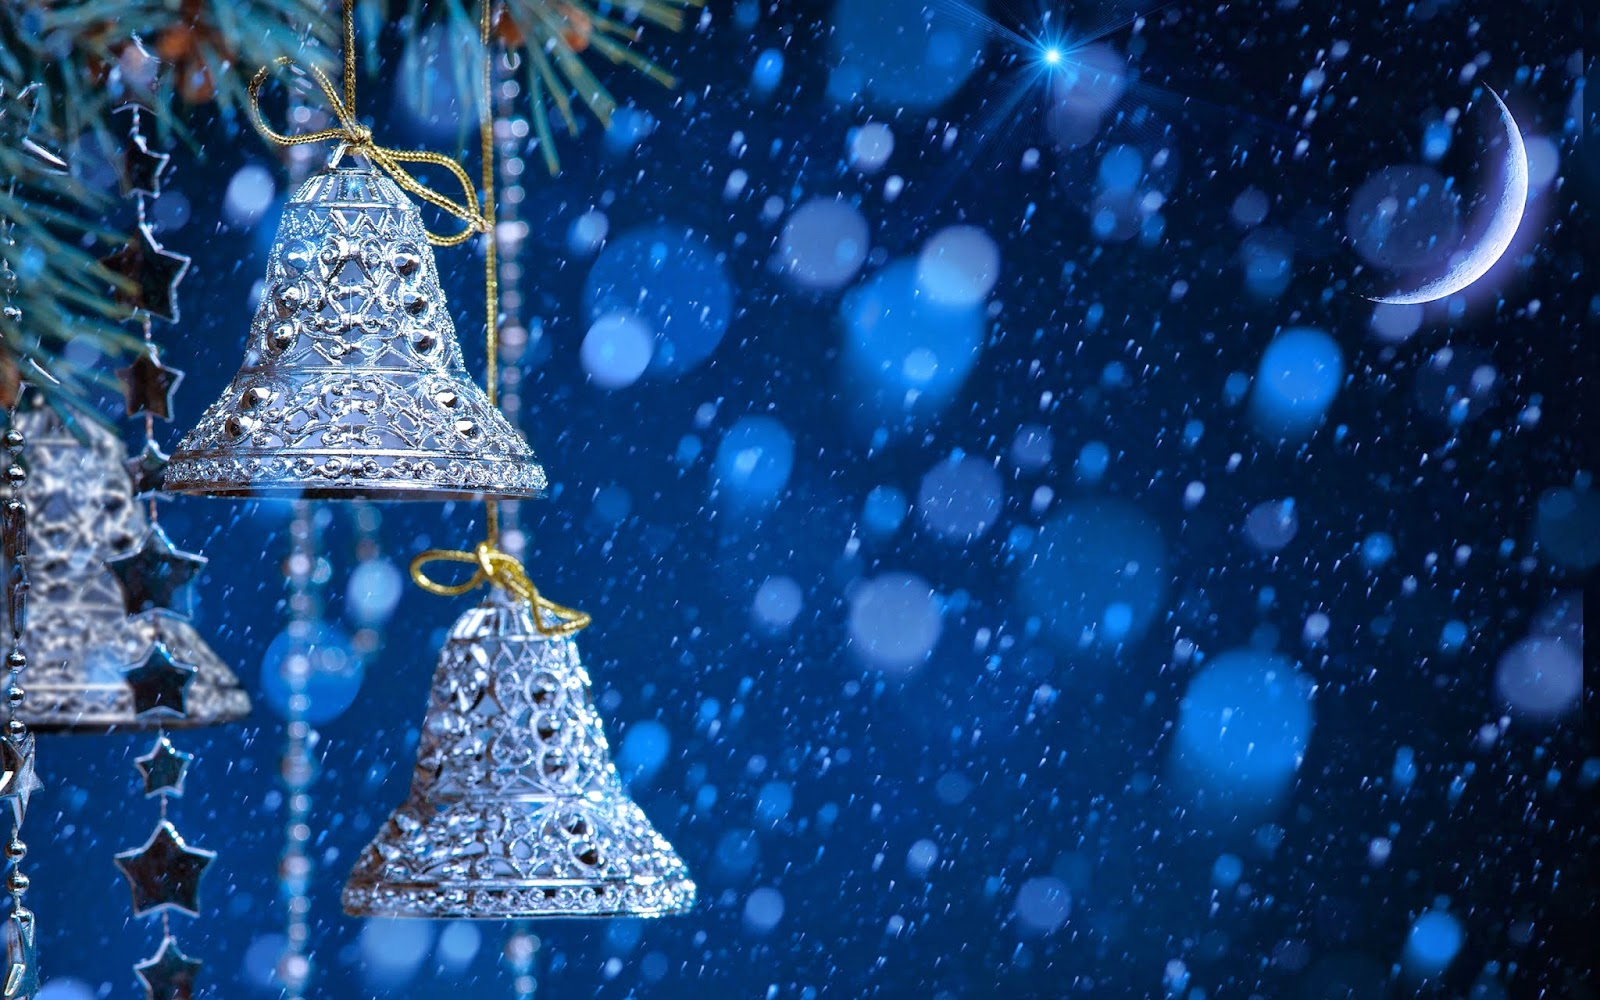 Christmas-jingle-bells-silver-with-snow-fall-blue-background-wallpaper-hd-for-desktop-pc-mac-laptop.jpg